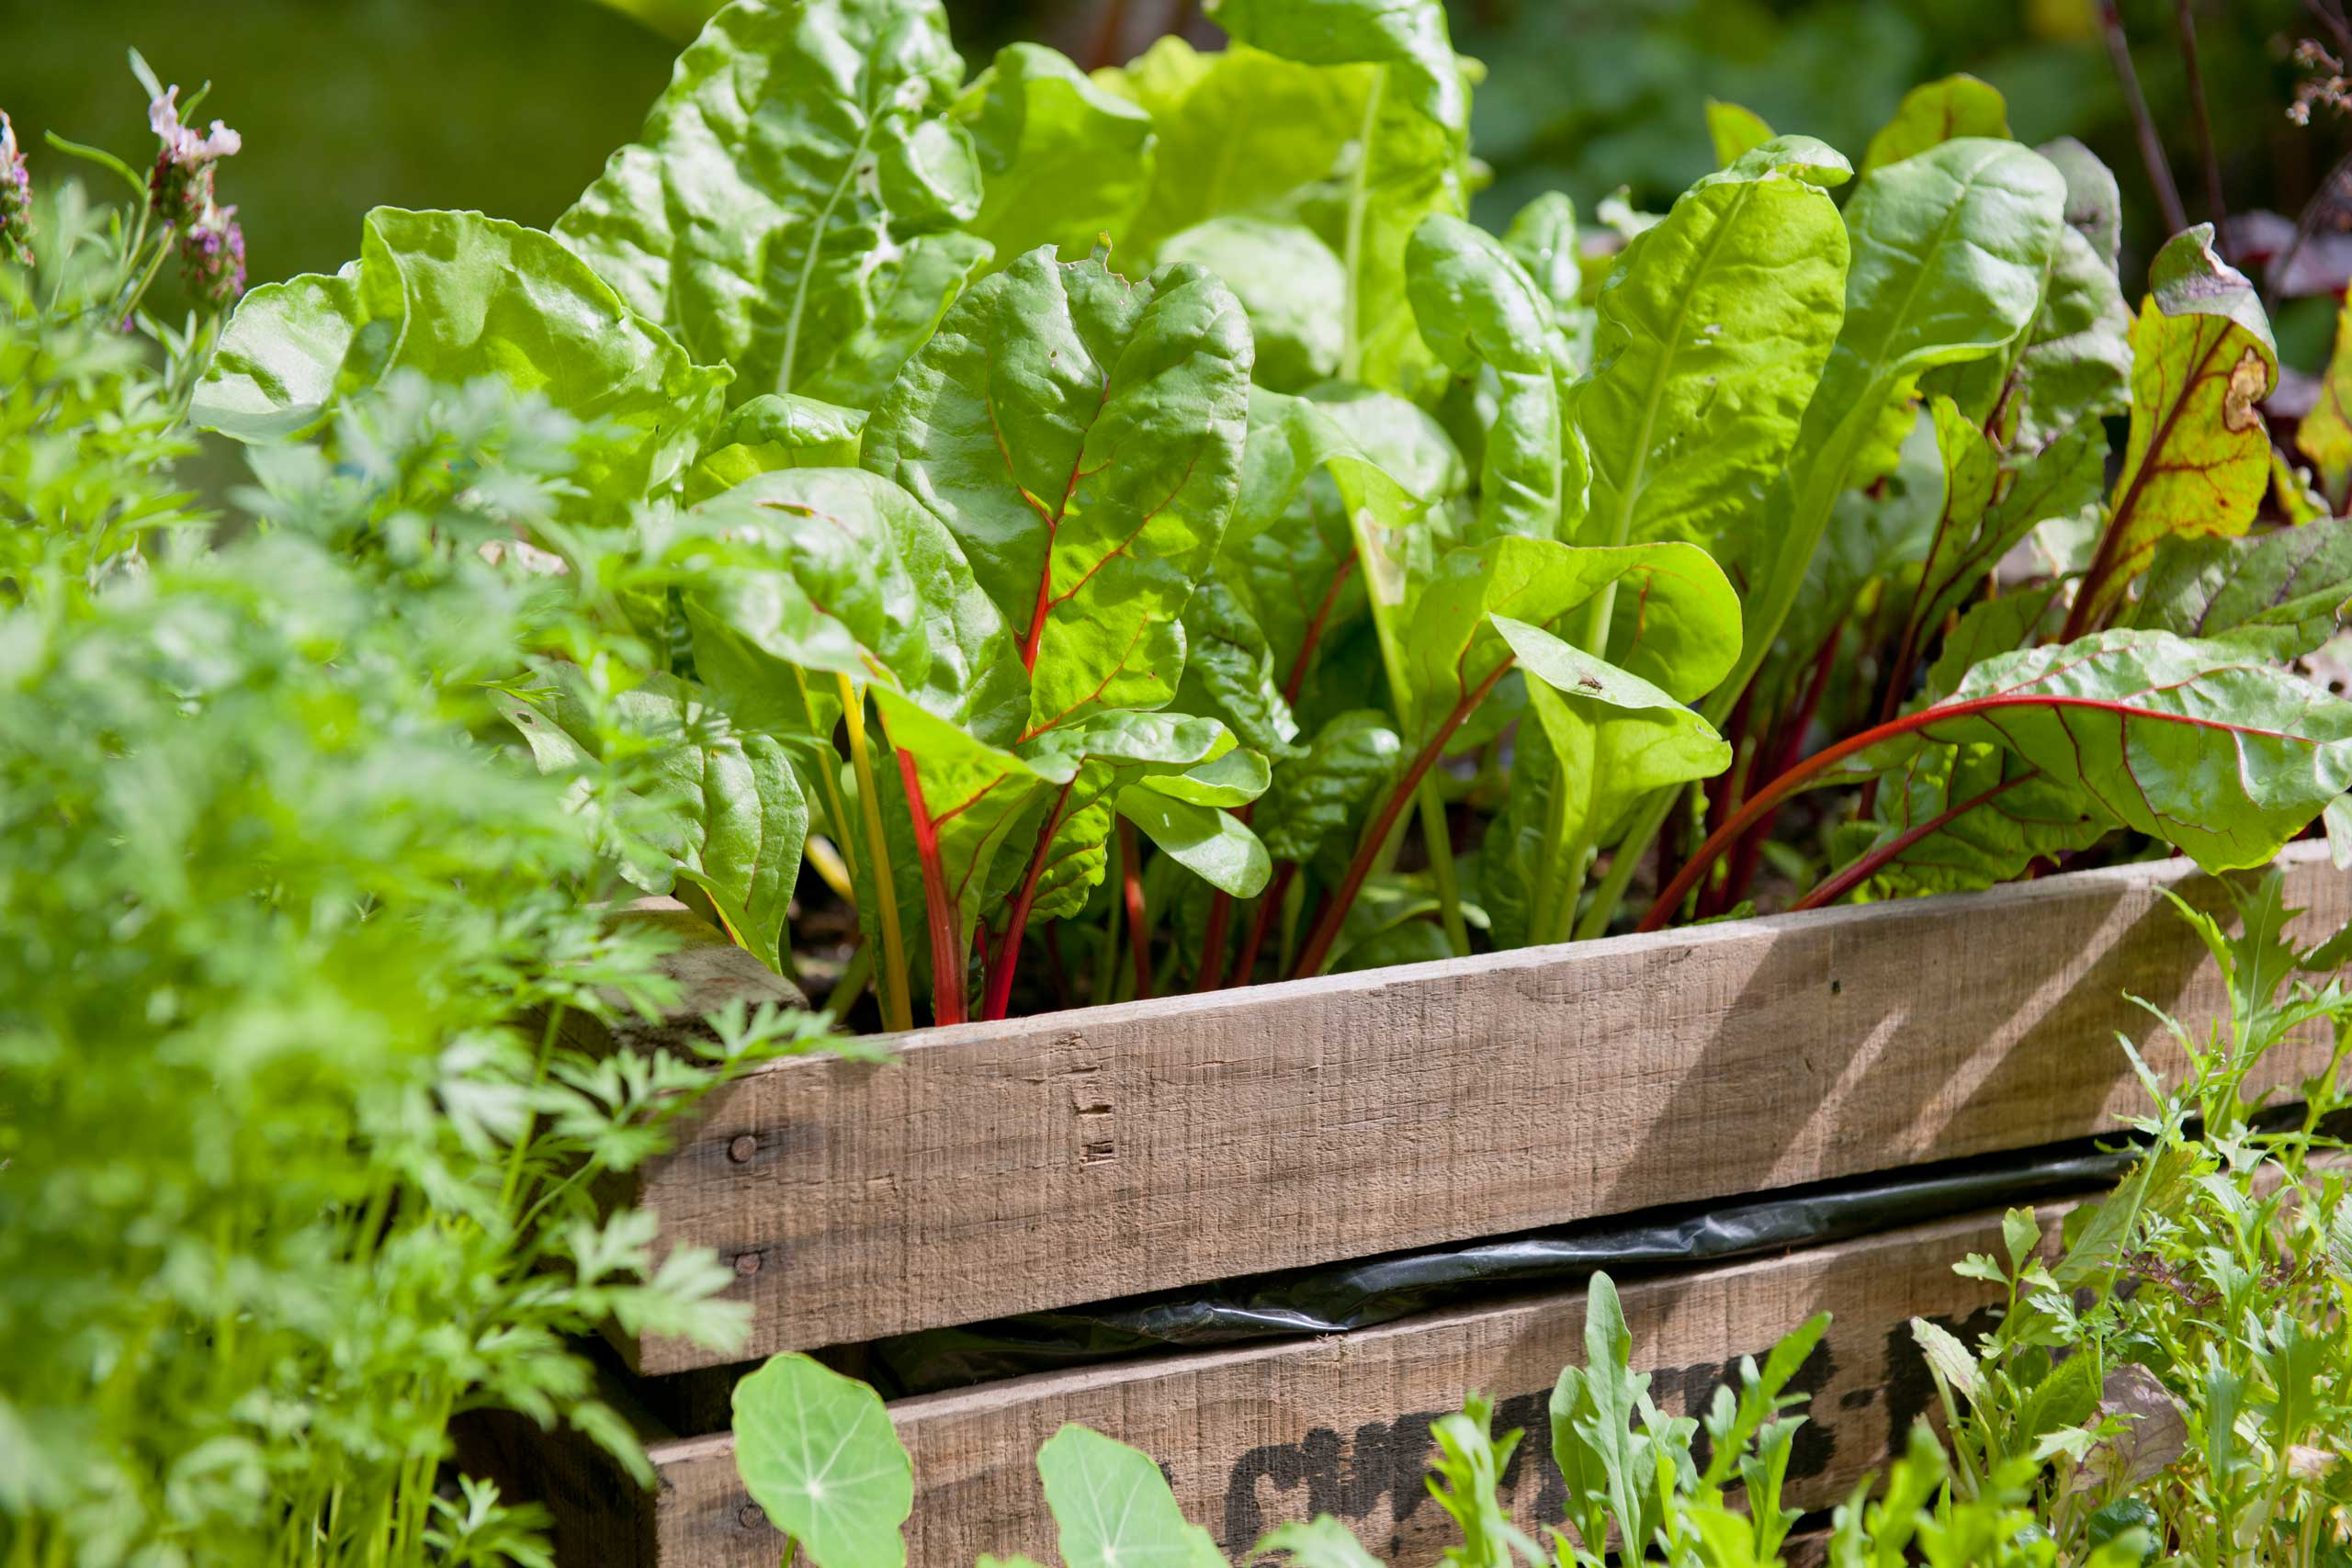 Red chard growing in wooden crate